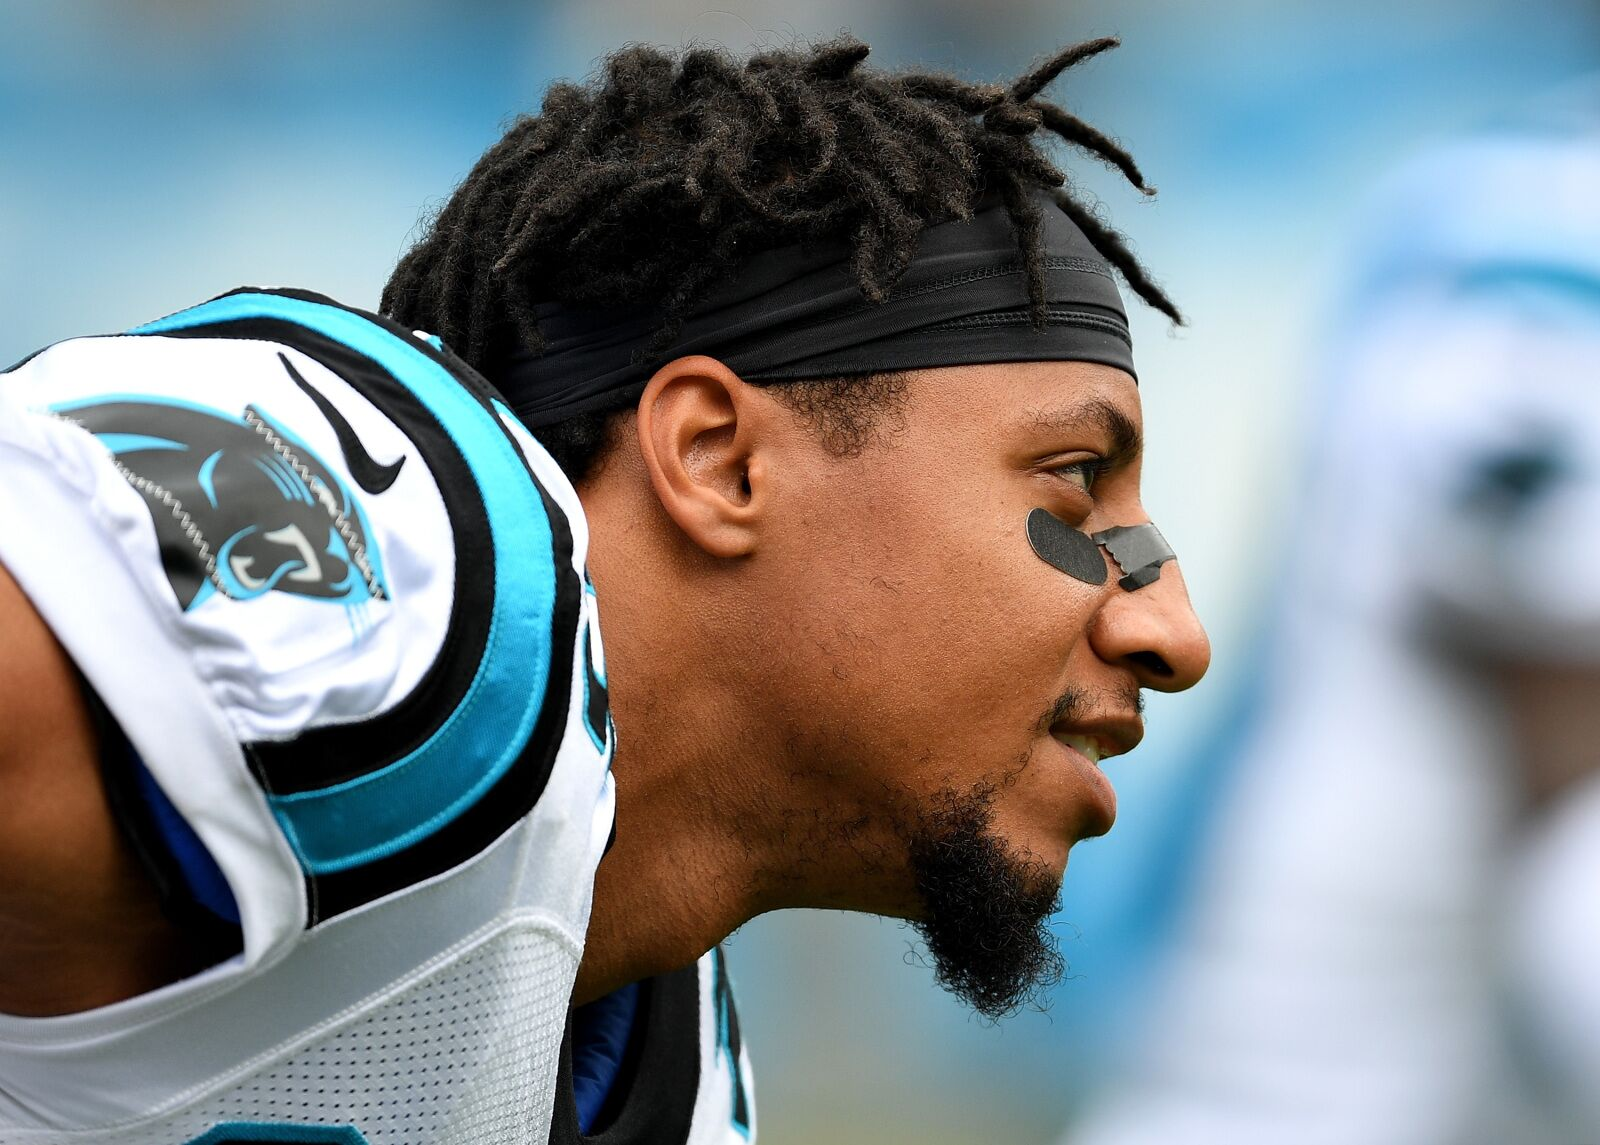 Carolina Panthers: Eric Reid settles collusion case against NFL